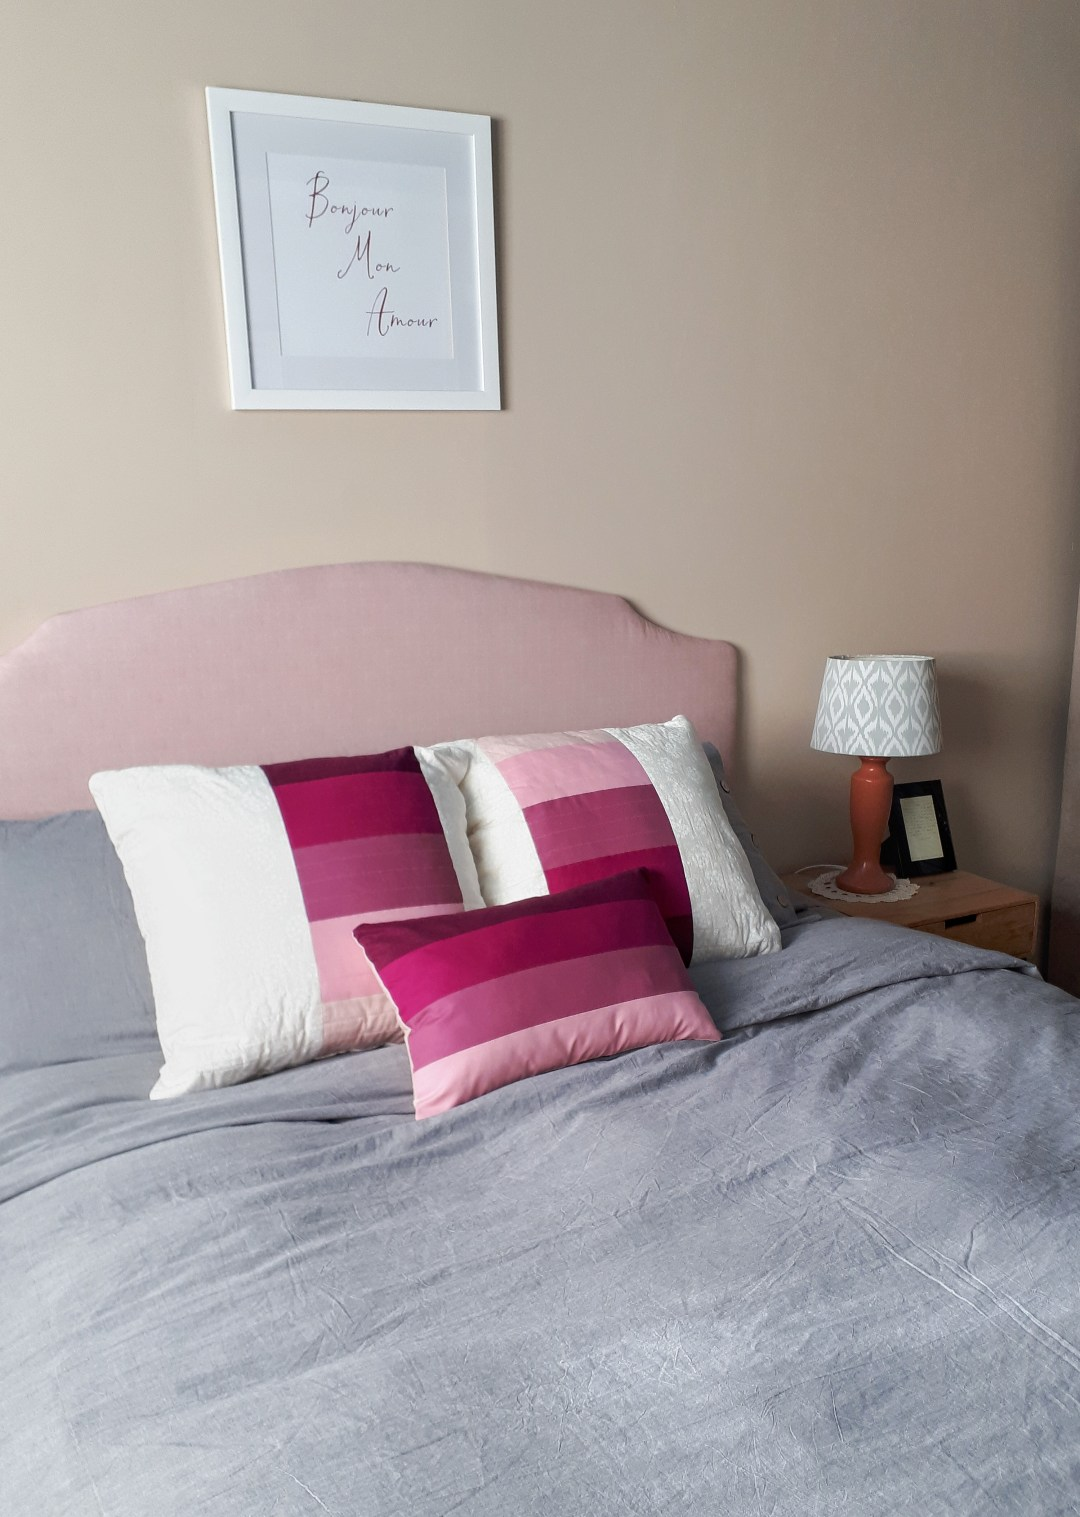 I DIY'ed these pretty throw cushions for our master bedroom makeover